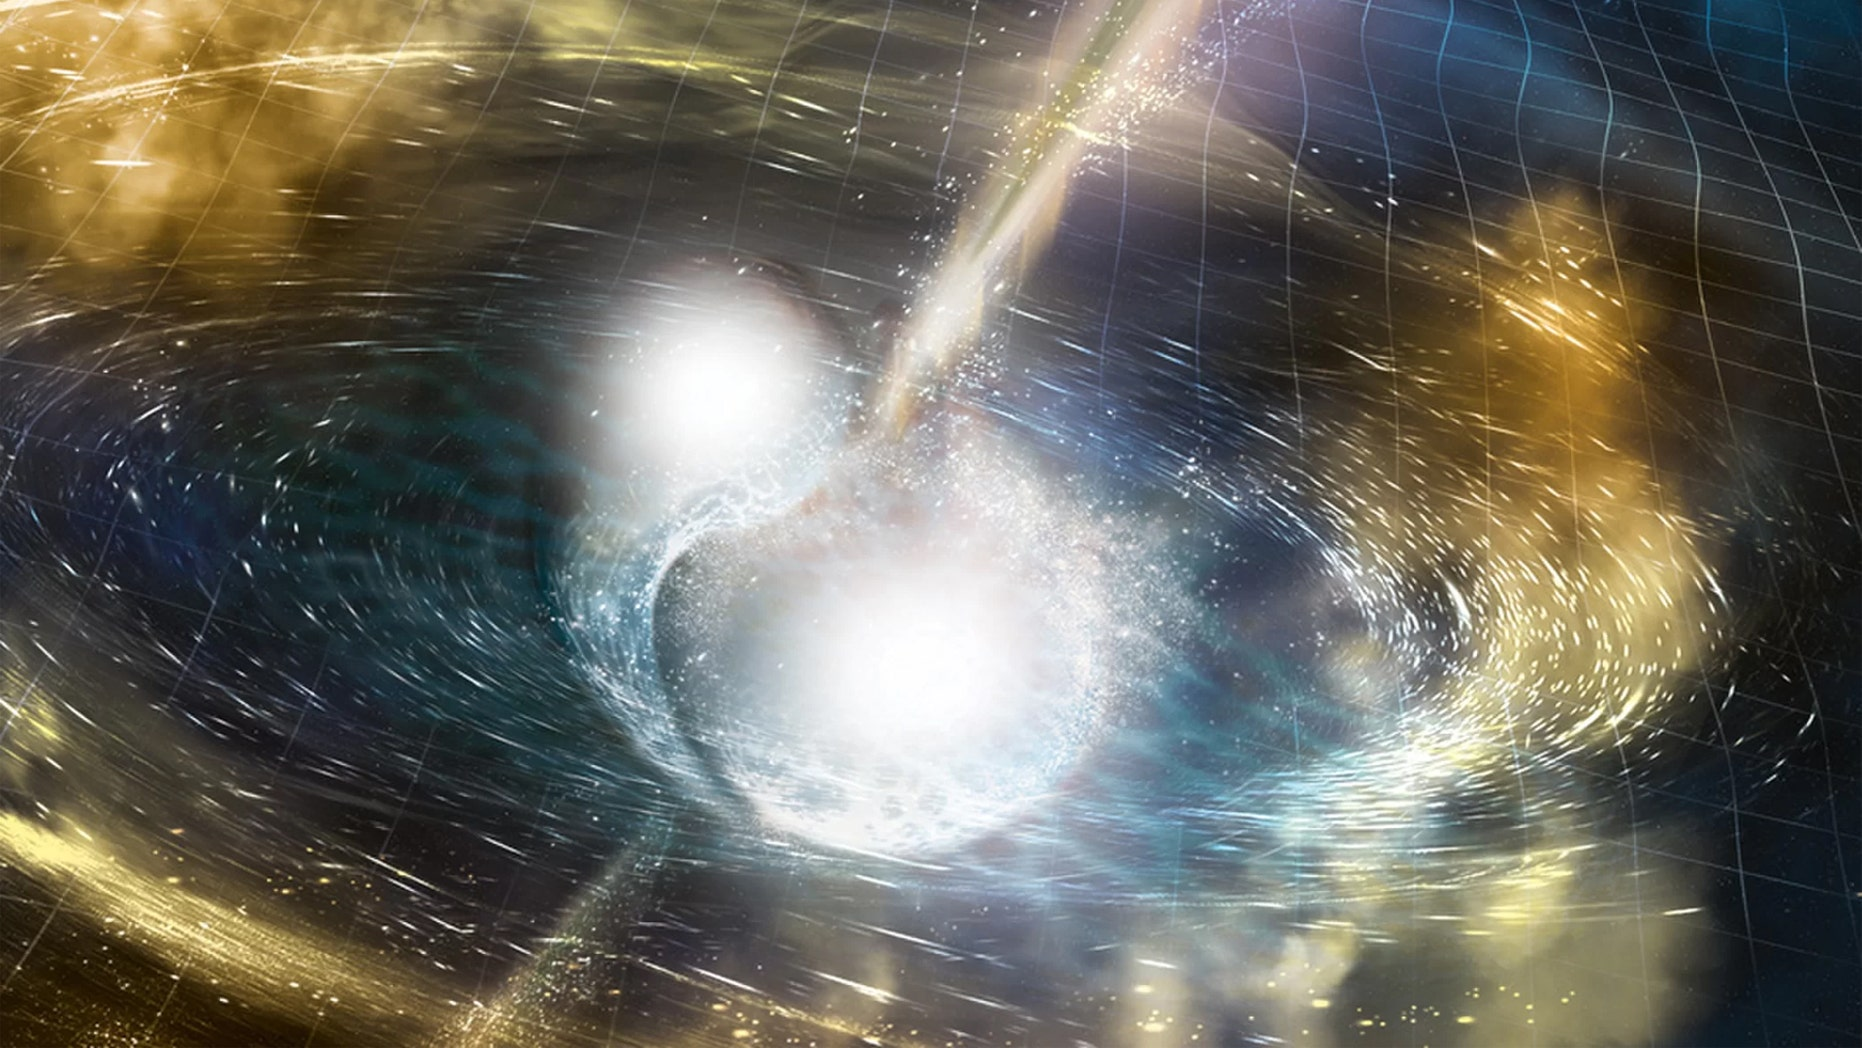 An illustration of two merging neutron stars. Credit: National Science Foundation/LIGO/Sonoma State University/A. Simonnet